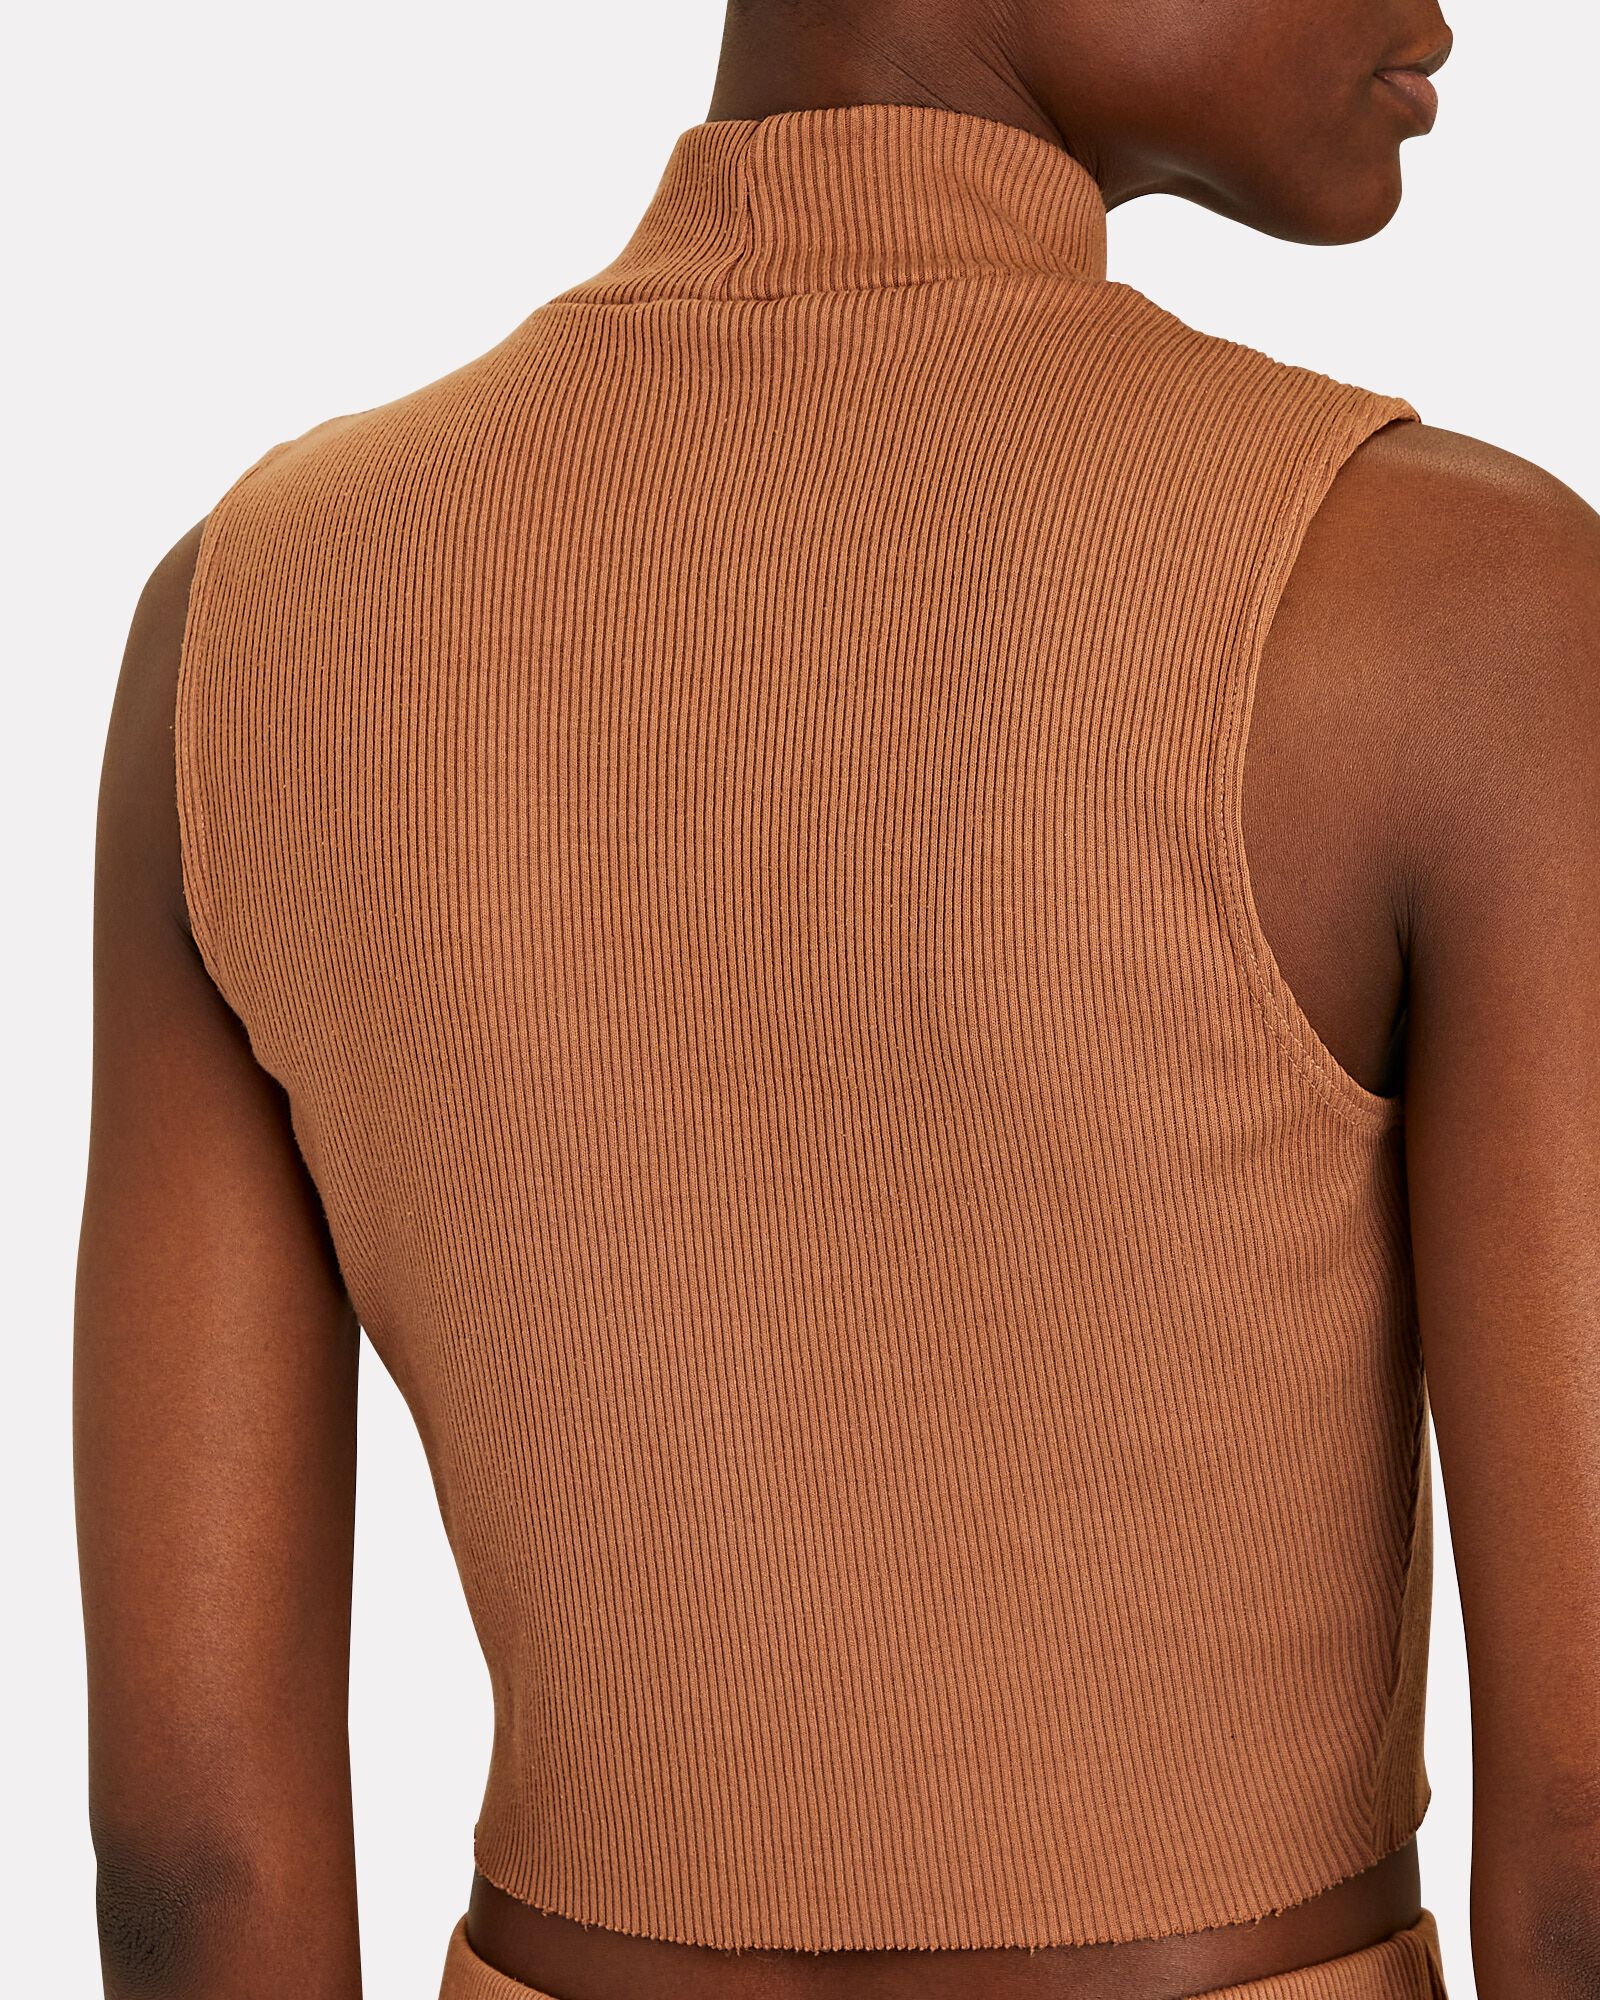 Cropped Sleeveless Mock Neck Top, BROWN, hi-res